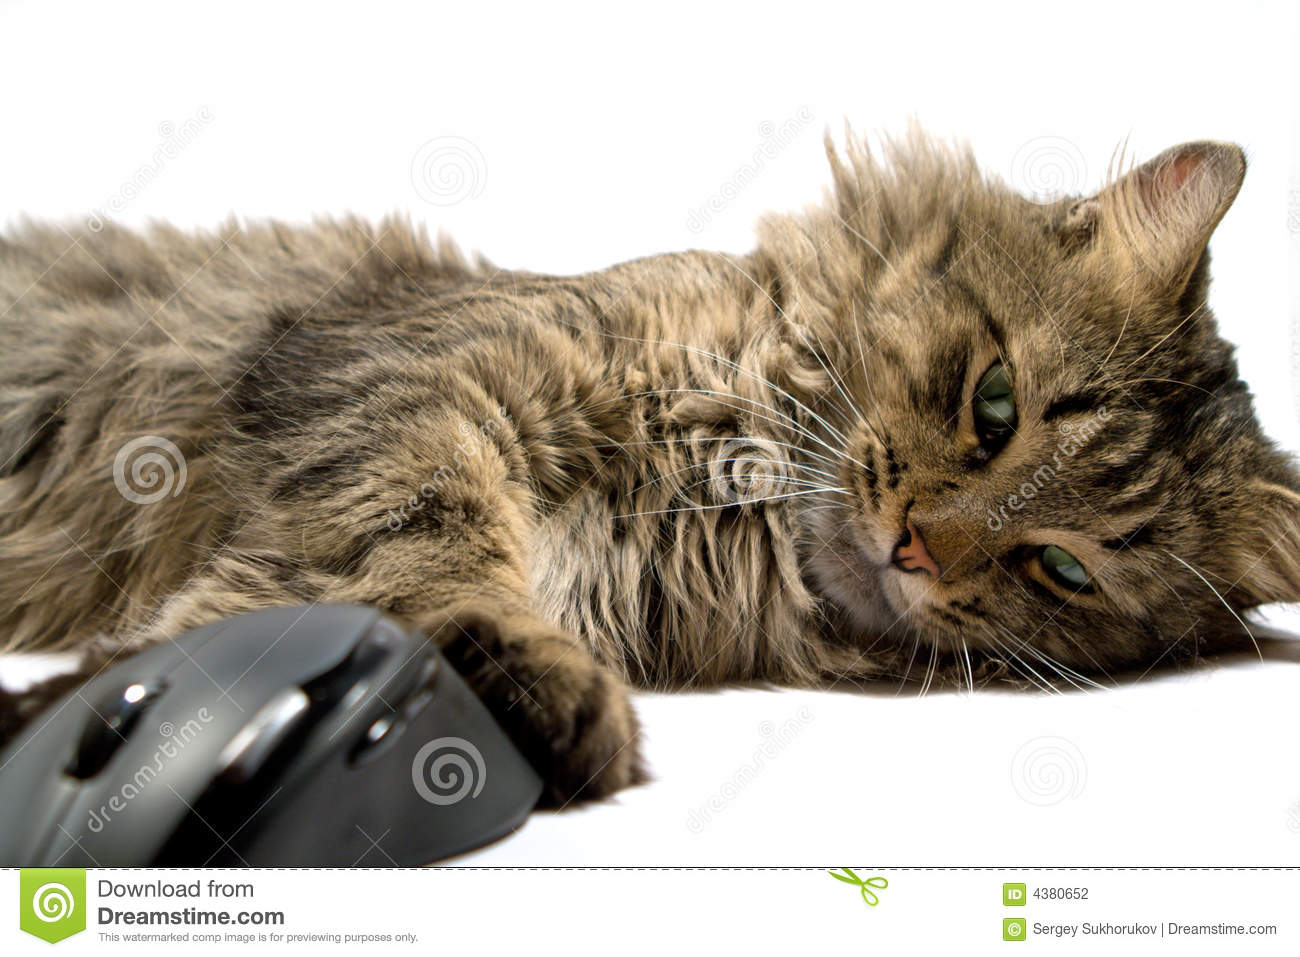 A cat and the computer mouse on a white background